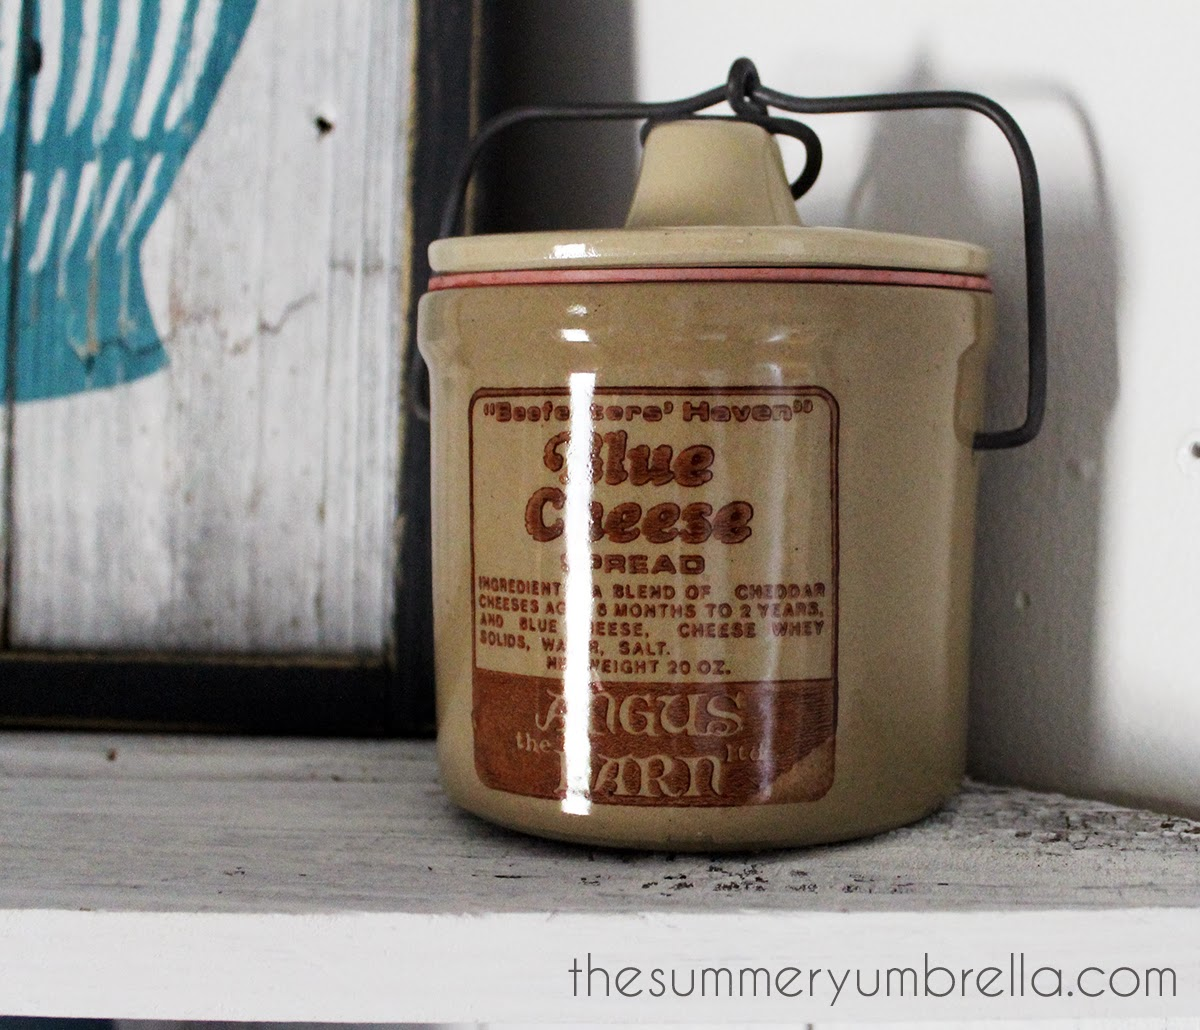 vintage blue cheese canister